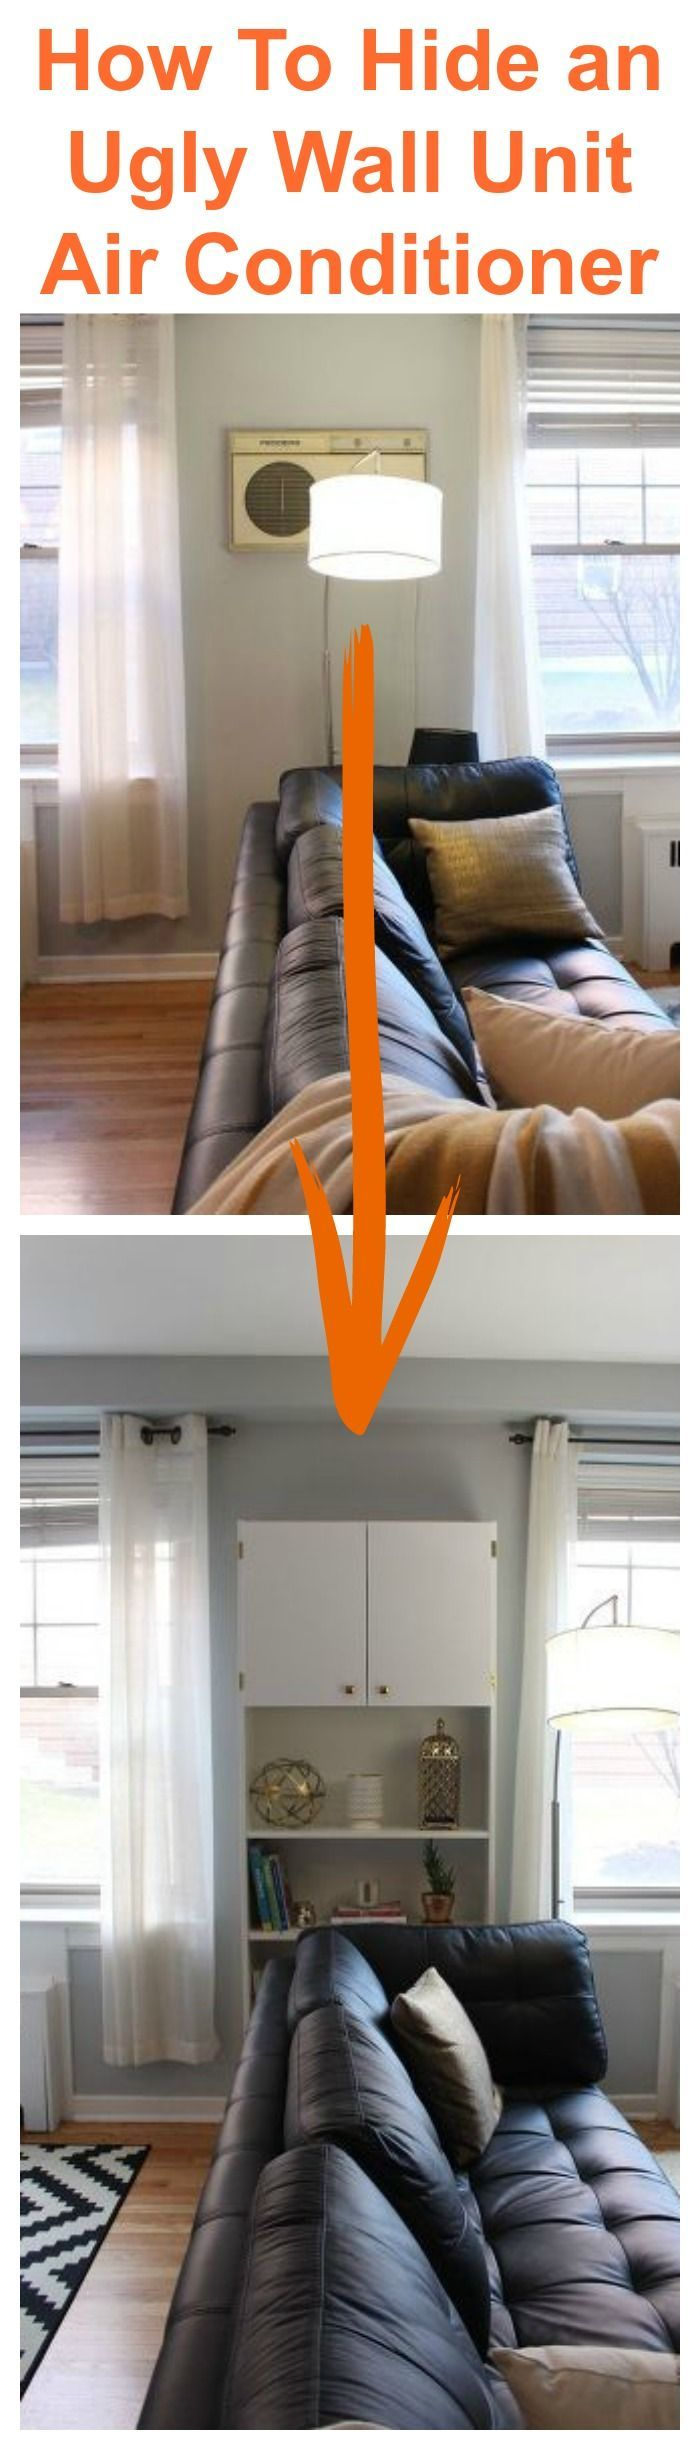 This Is Such A Genius Idea To Hide An Ugly Wall Unit Air Conditioner. More